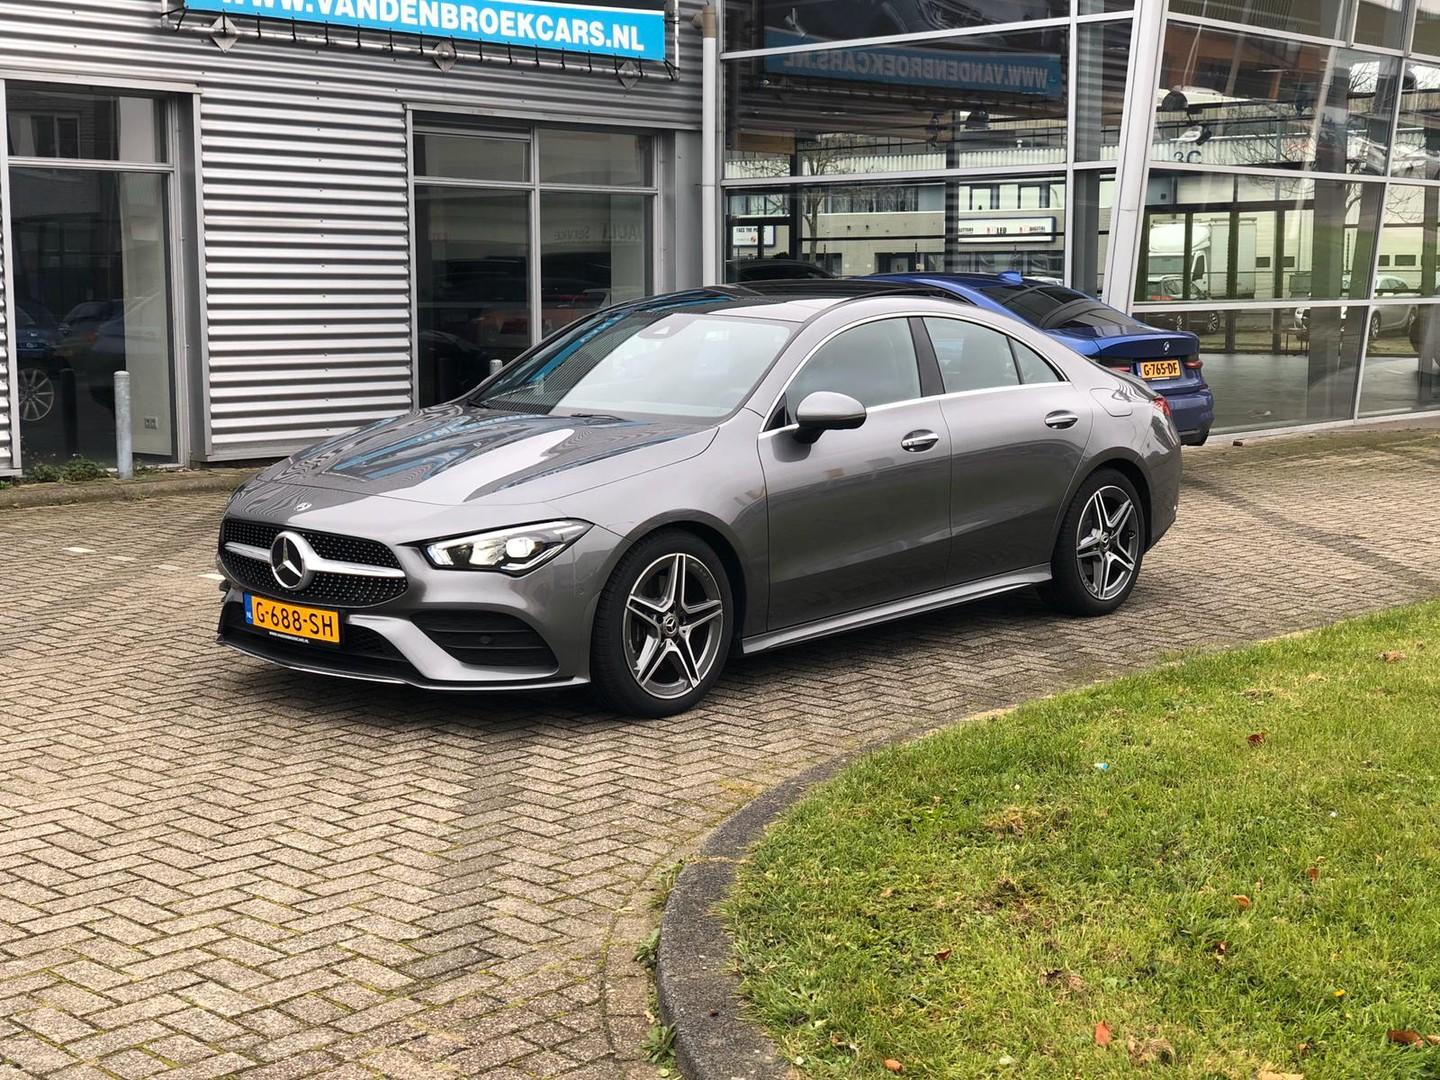 Mercedes-benz Cla-klasse 200 amg / pano / ambient / keyless,mirror,parking,seat,light package / volvolvol nieuw model